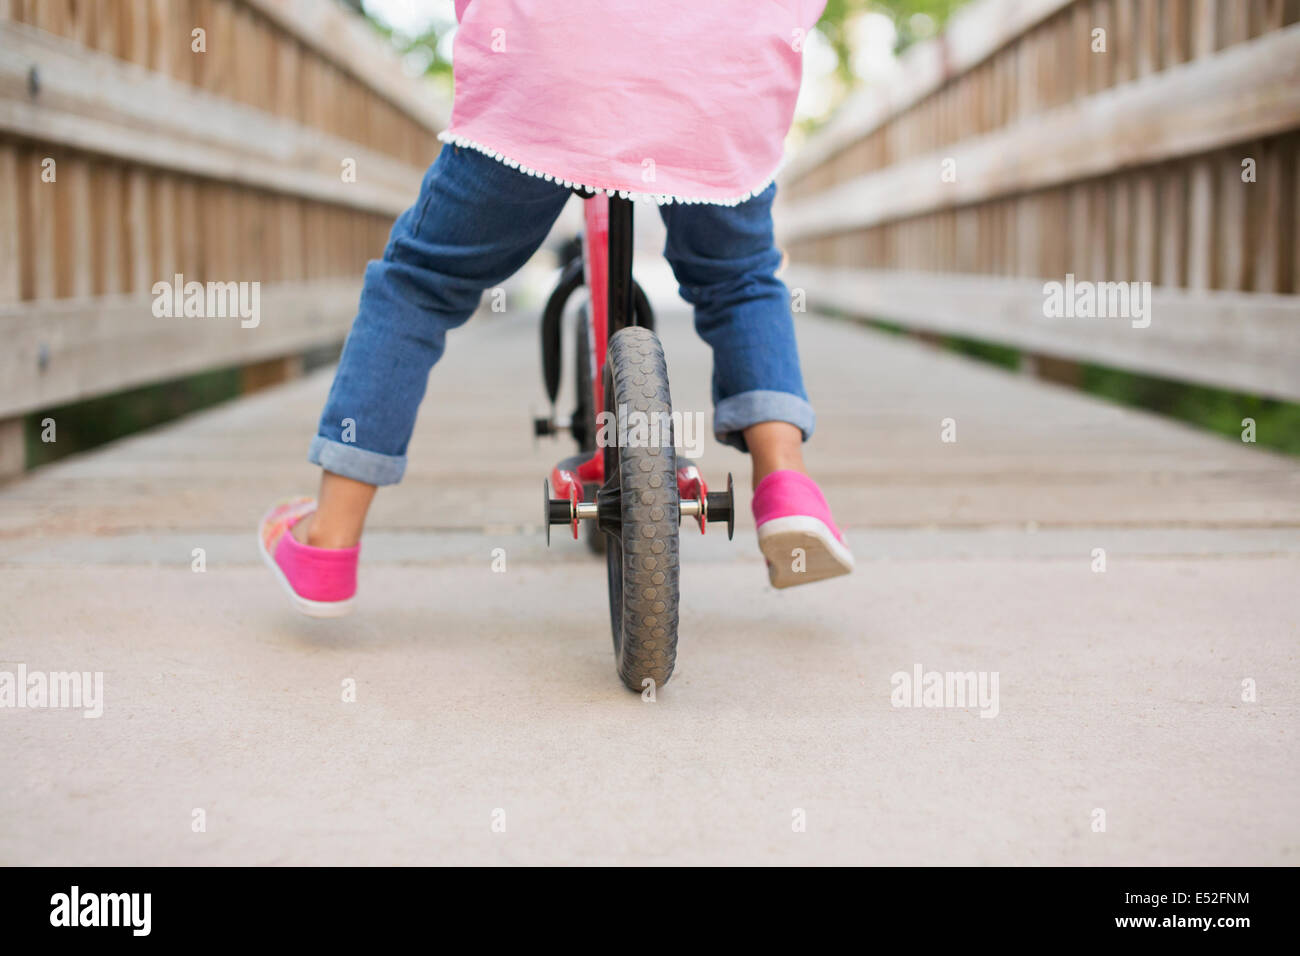 Un enfant à cheval sur un vélo sur un trottoir. Photo Stock